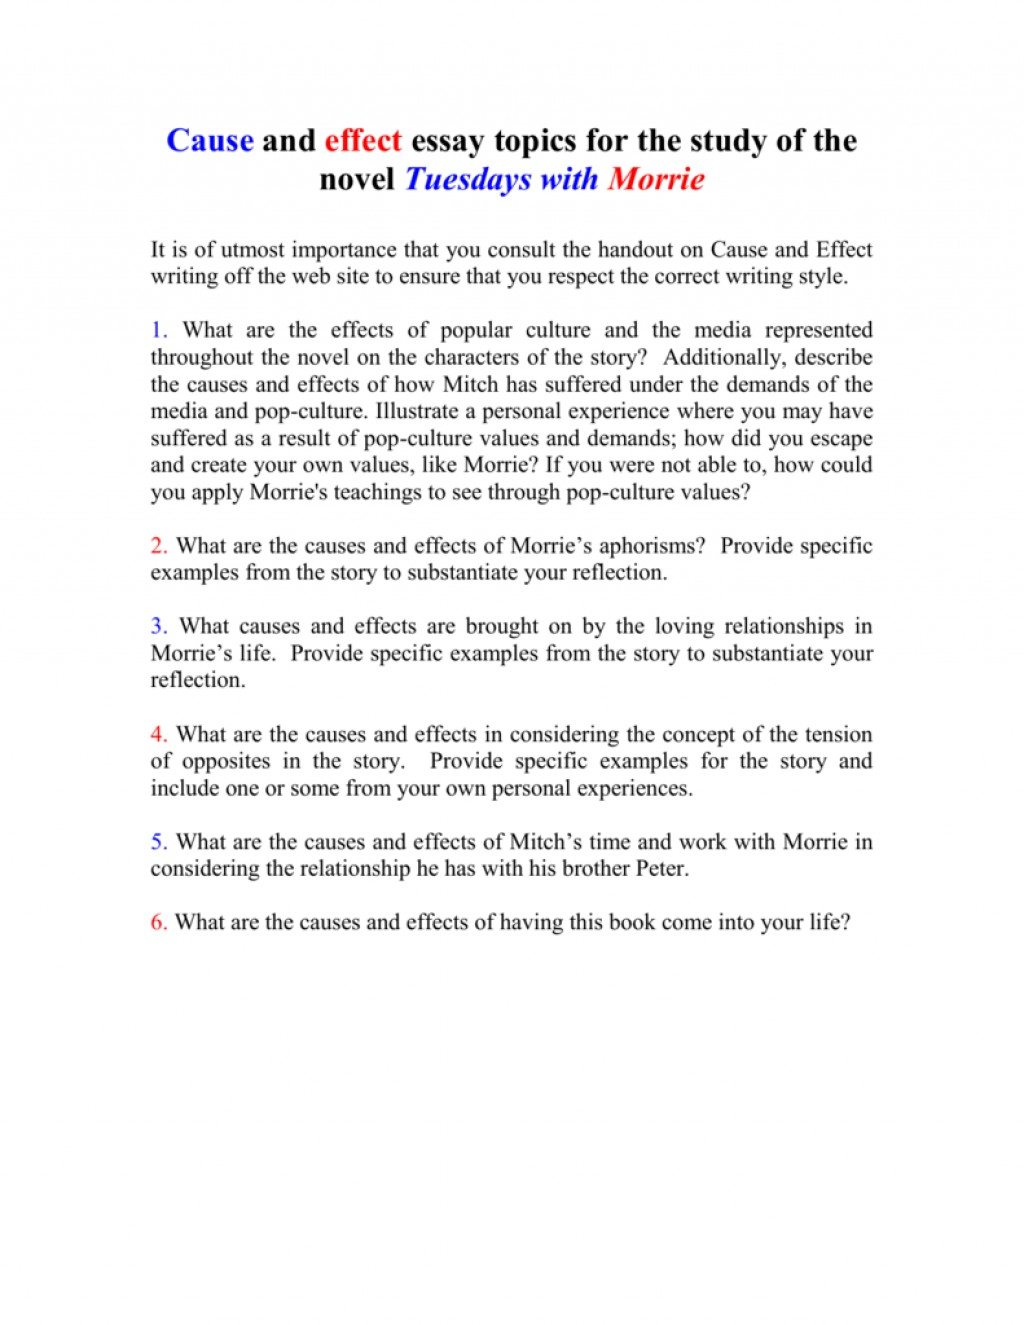 013 Essay Example 008010712 1 Tuesdays With Striking Morrie Topics Writing Prompts Paper Large